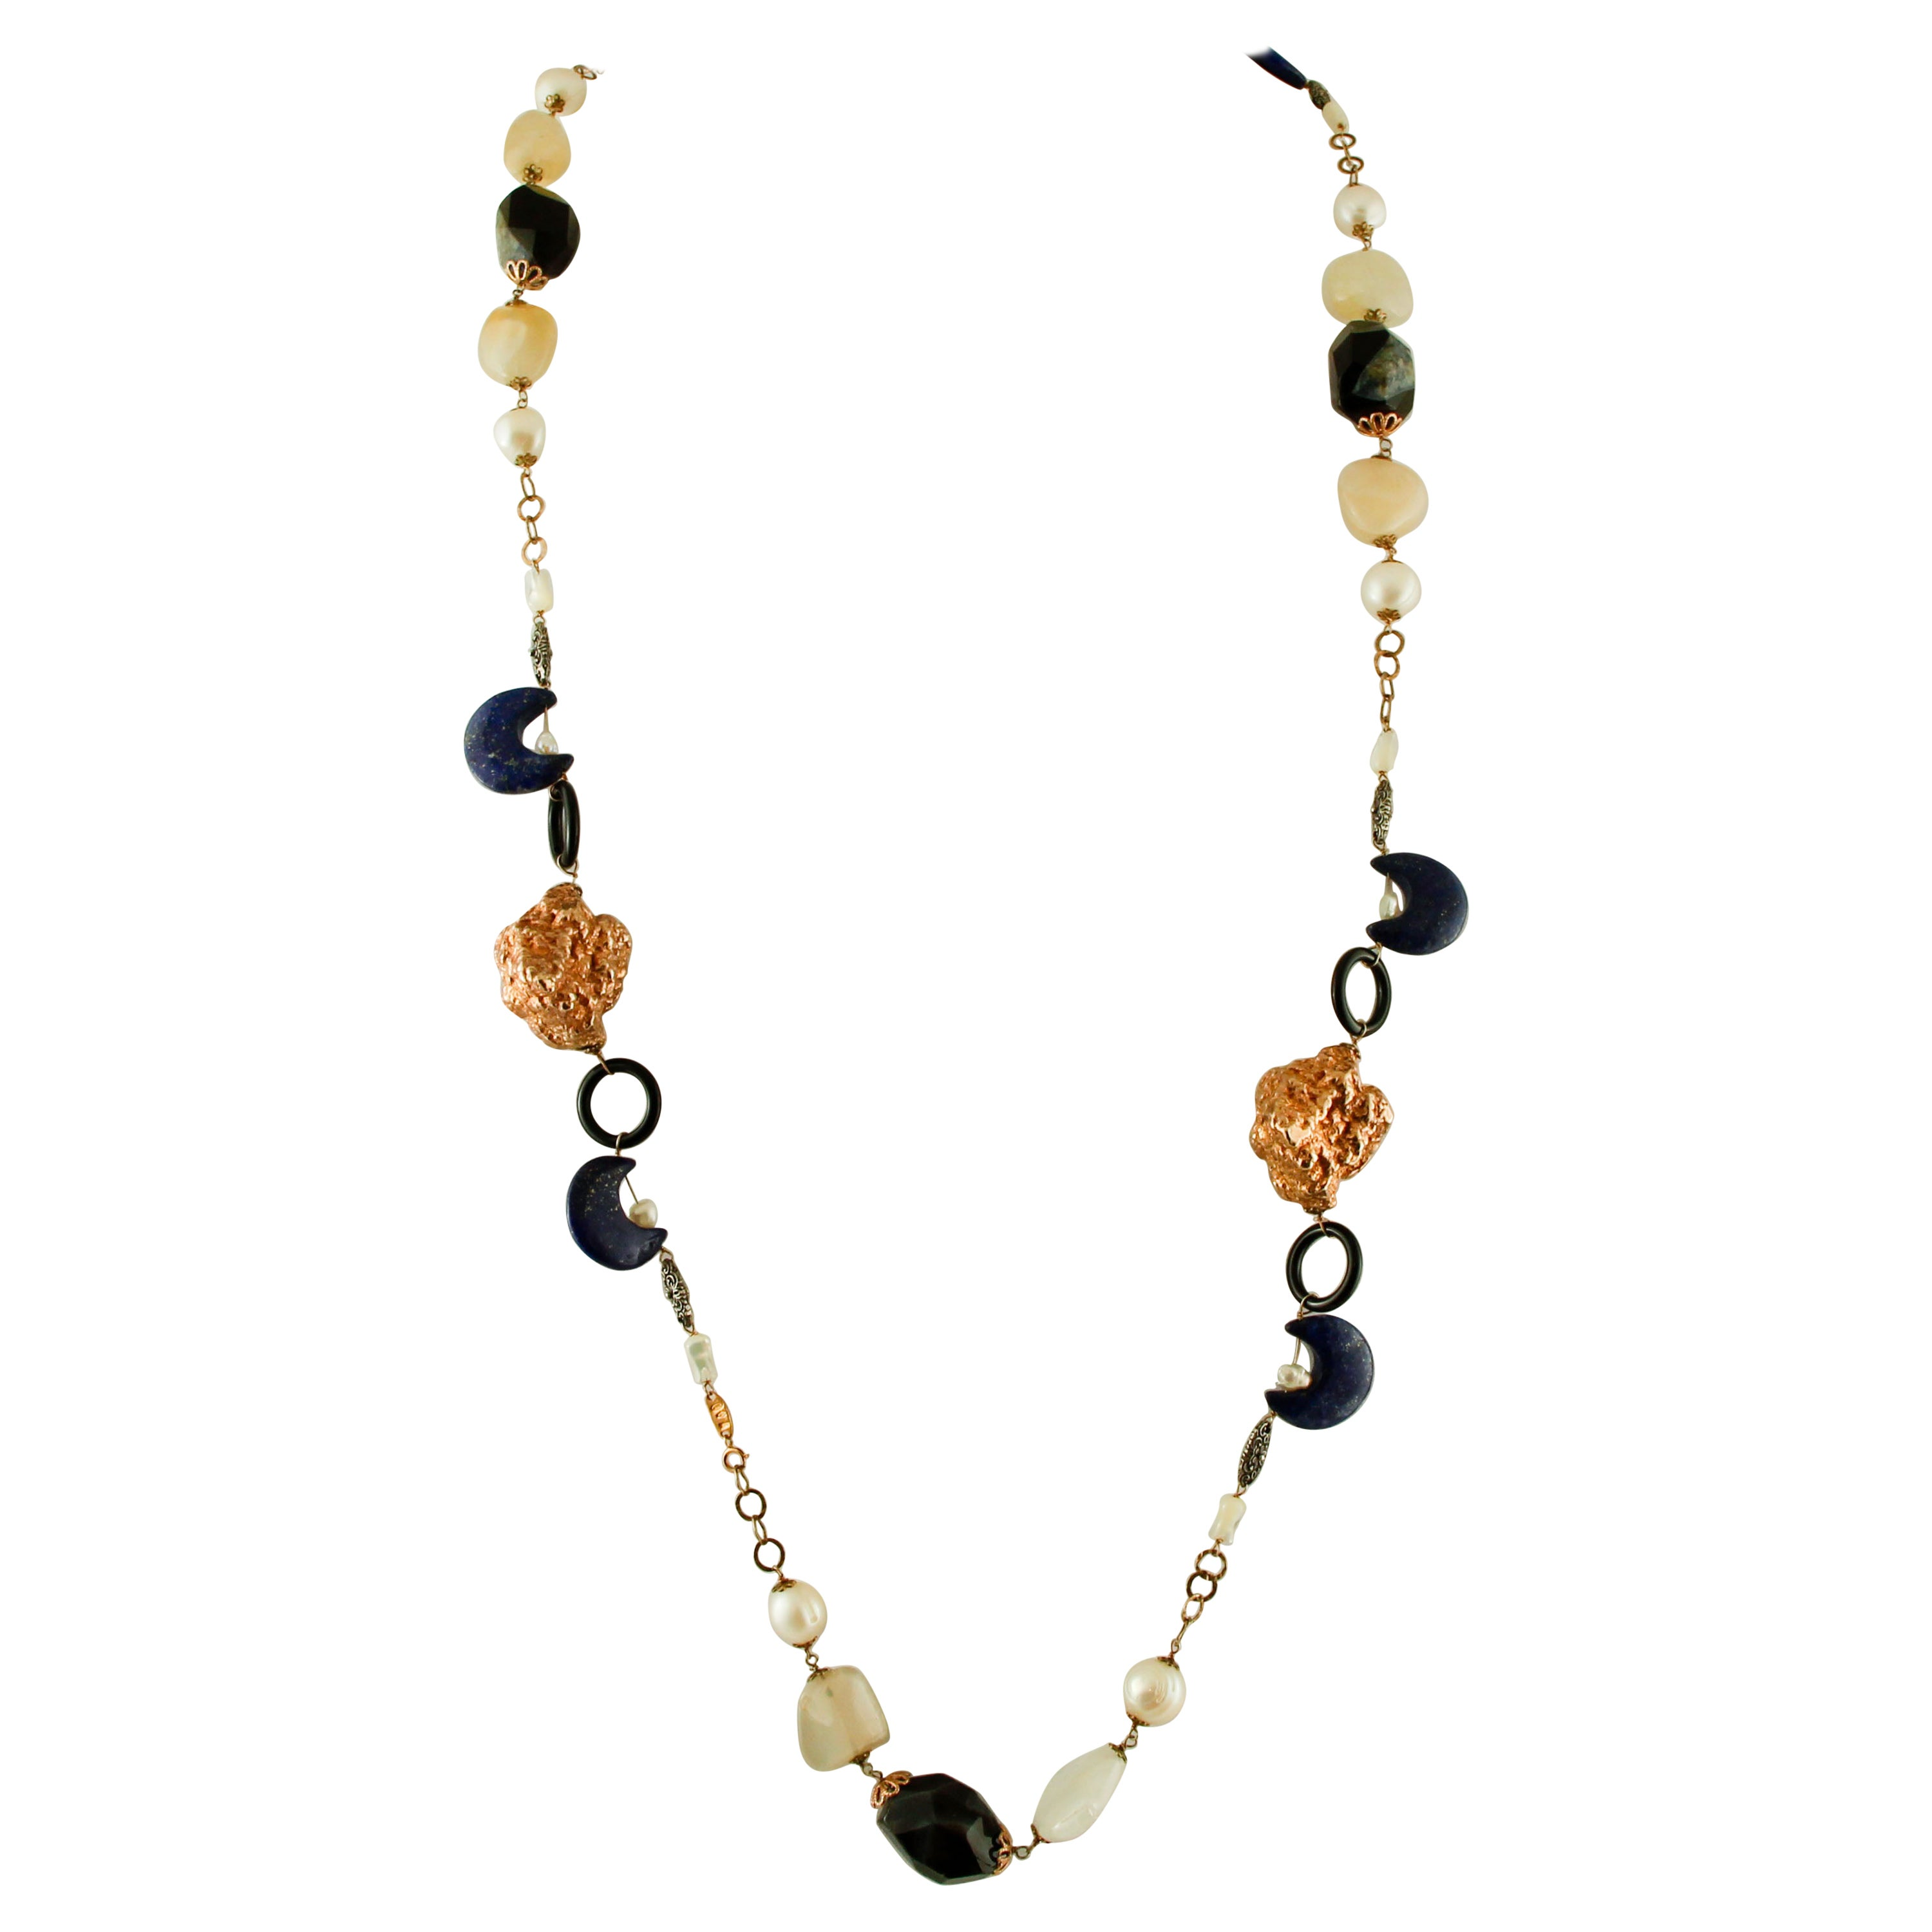 Agate,Lapis lazuli, Pearl,Mother-of-pearl,Moonstone,9k Rose Gold&Silver Necklace